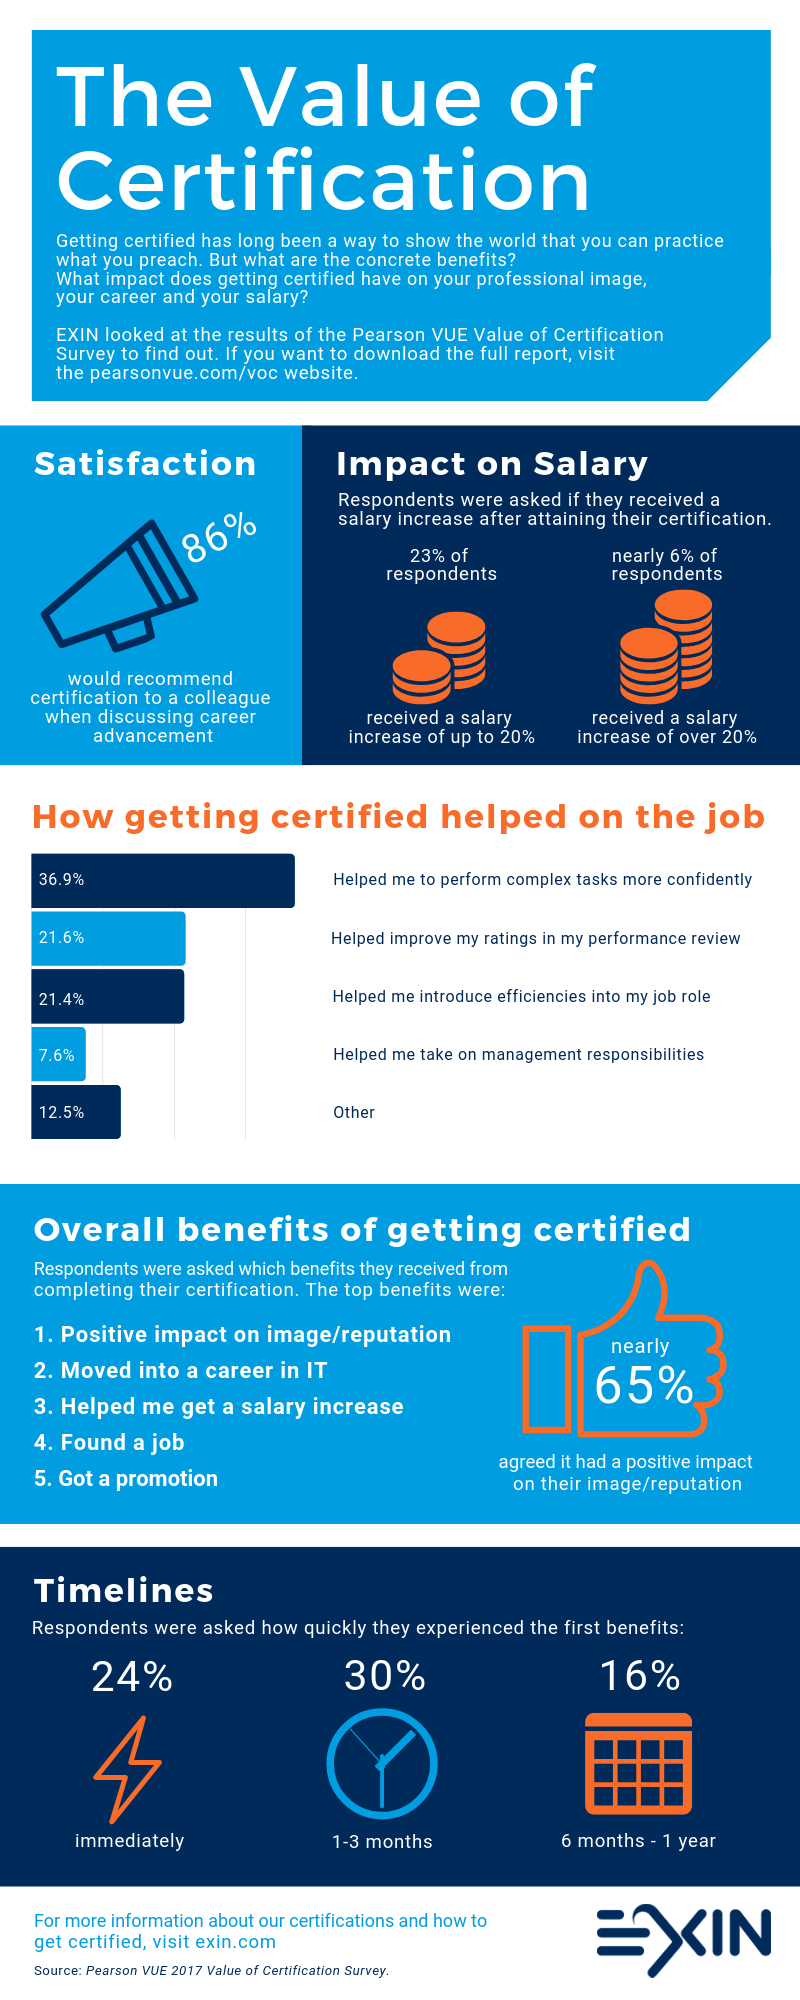 The Value of Certification Infographic